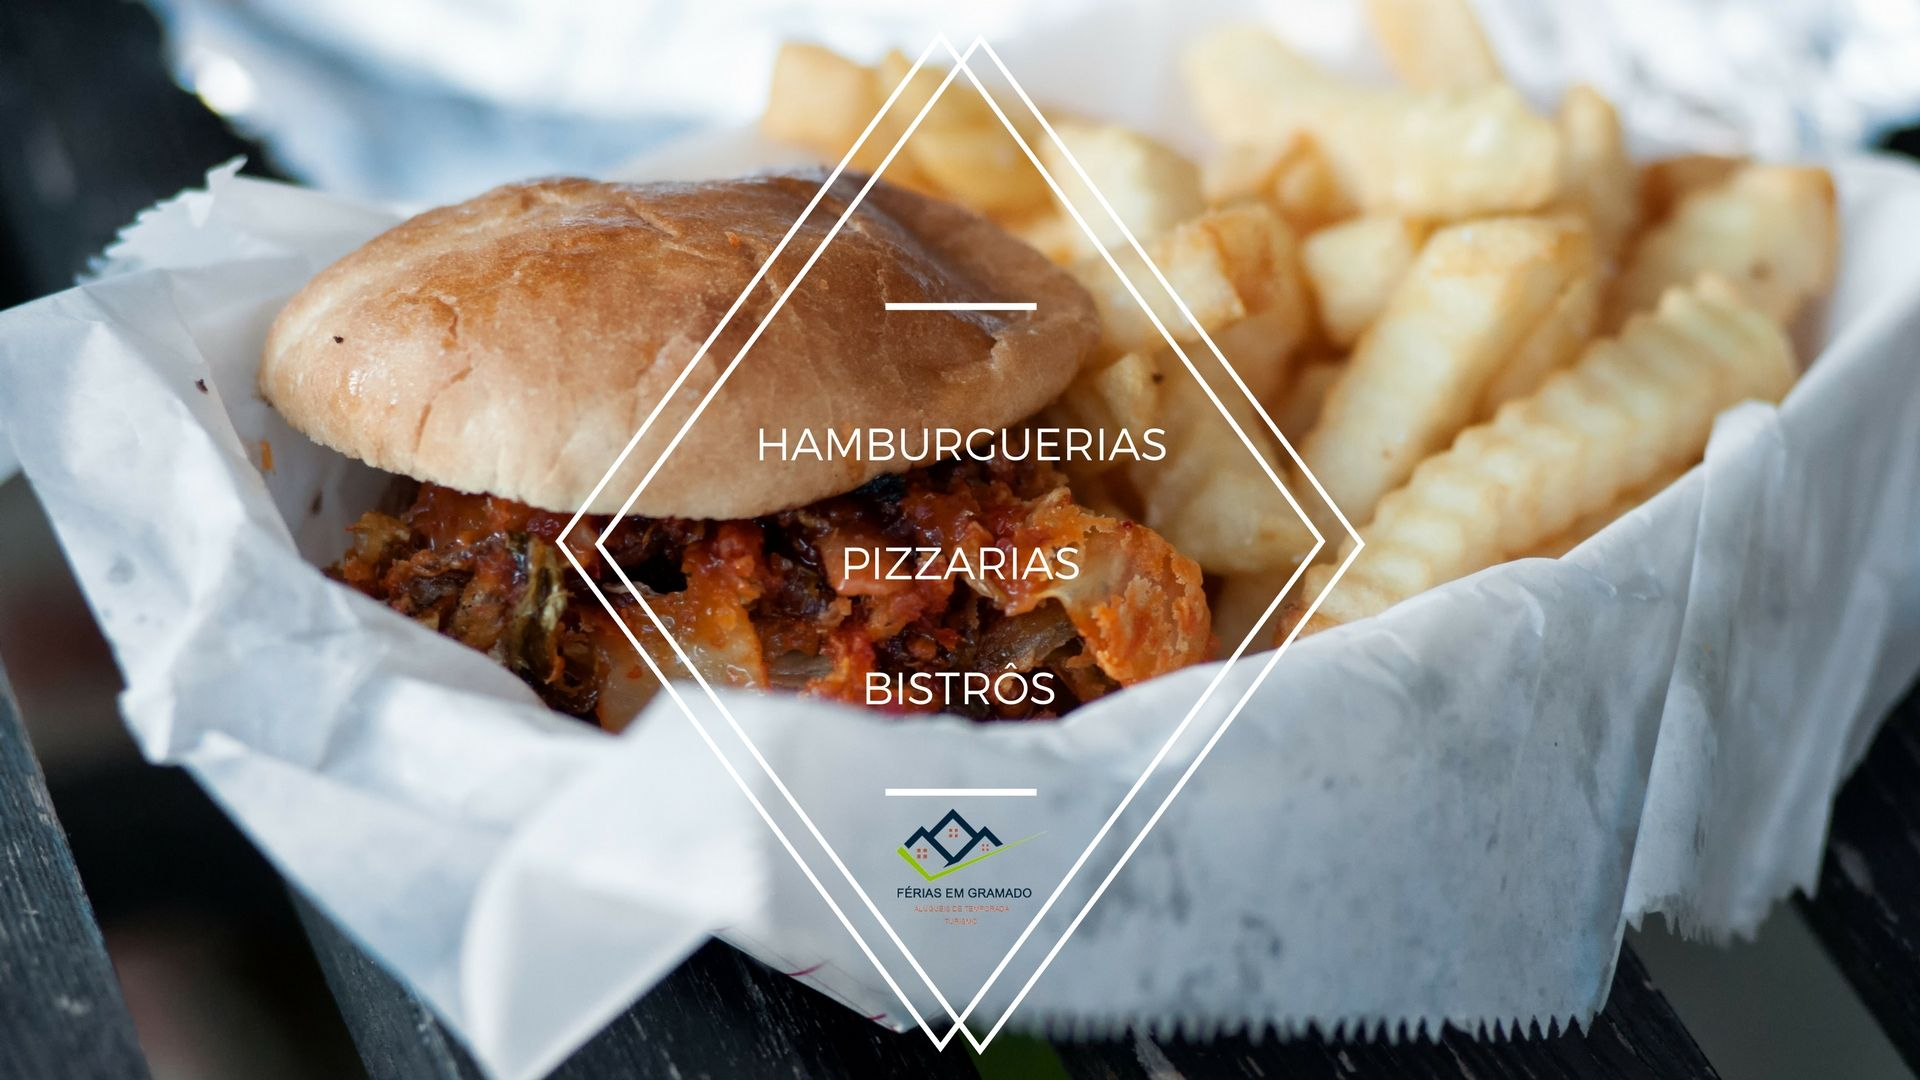 Hamburguerias, Pizzarias e Bistrôs